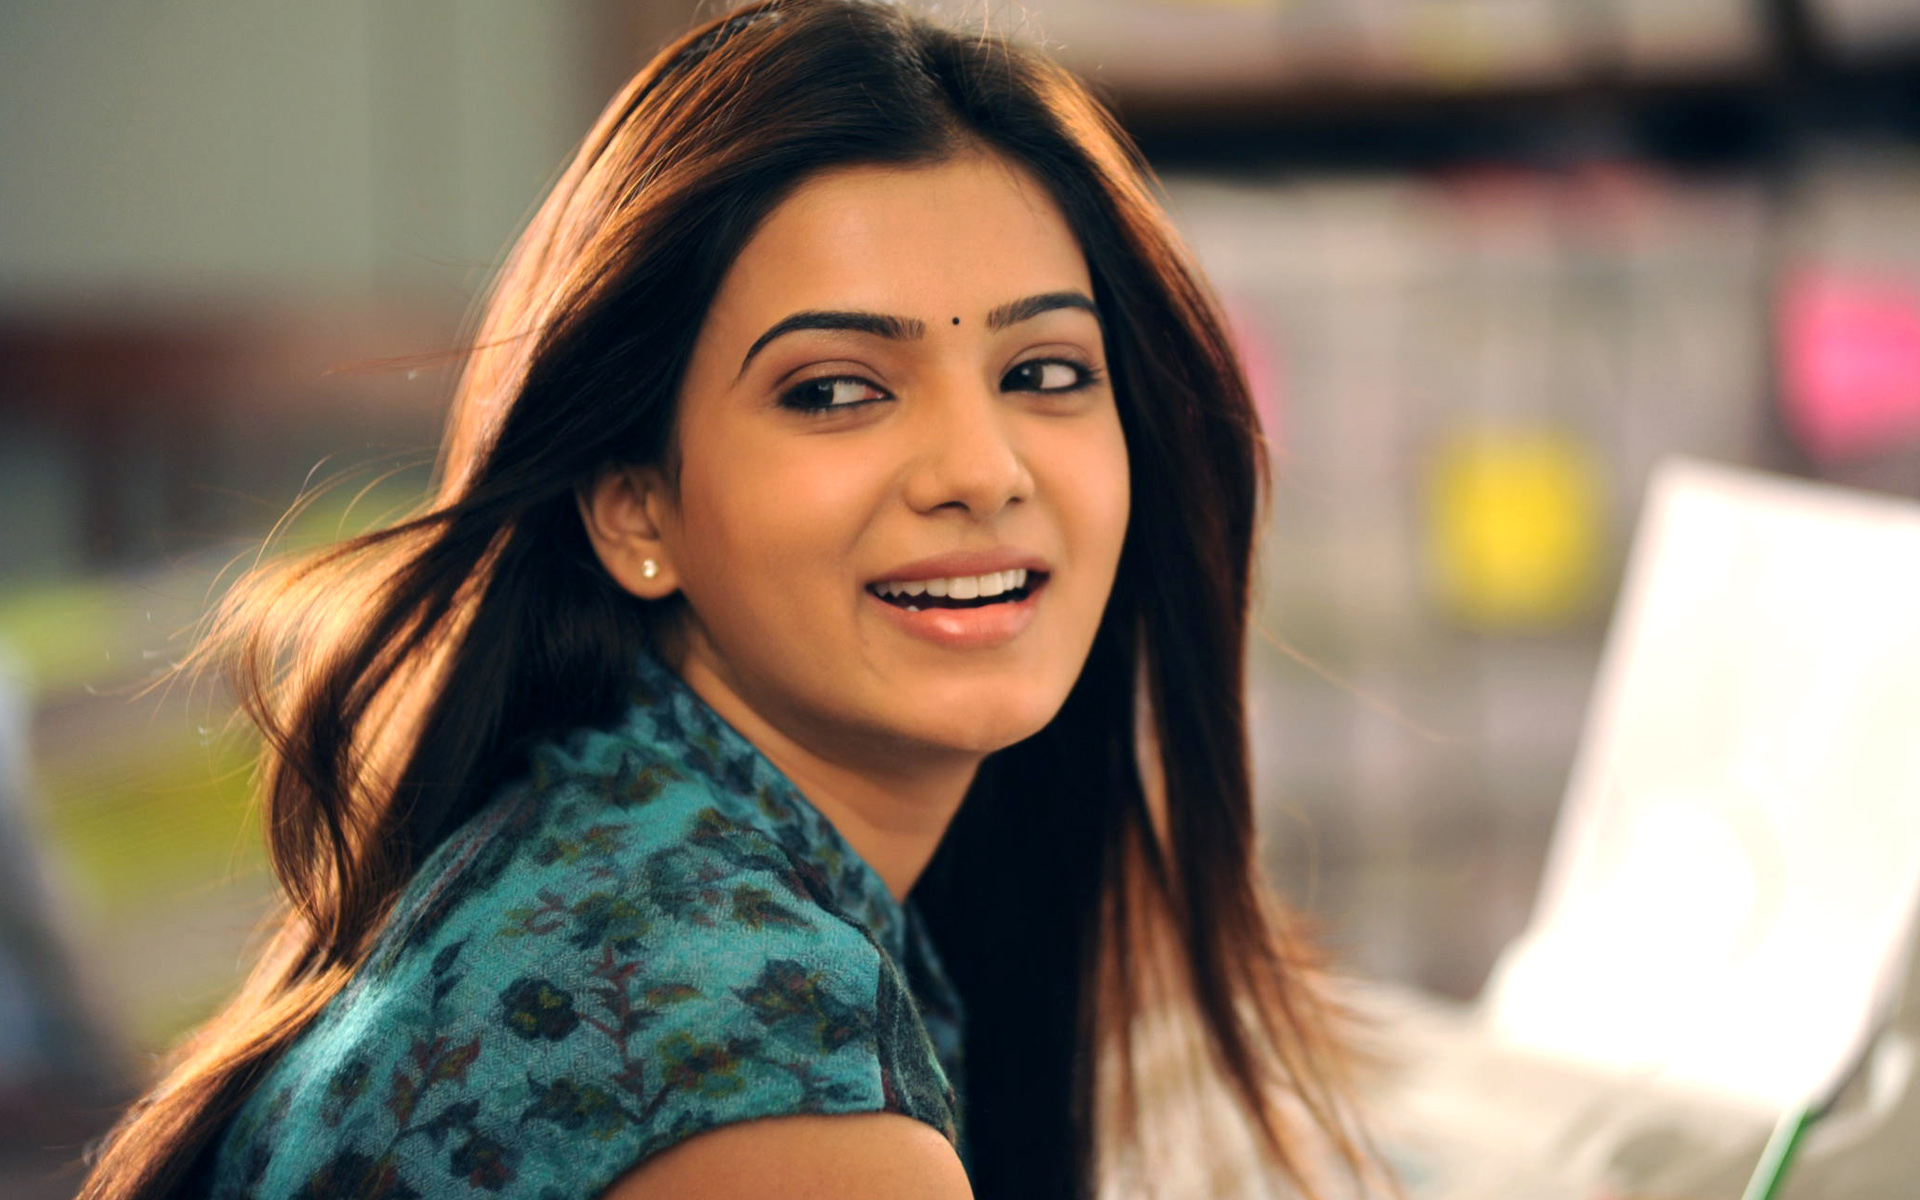 Sweet Samantha in Eega movie - Sweet Samantha in Eega Movie